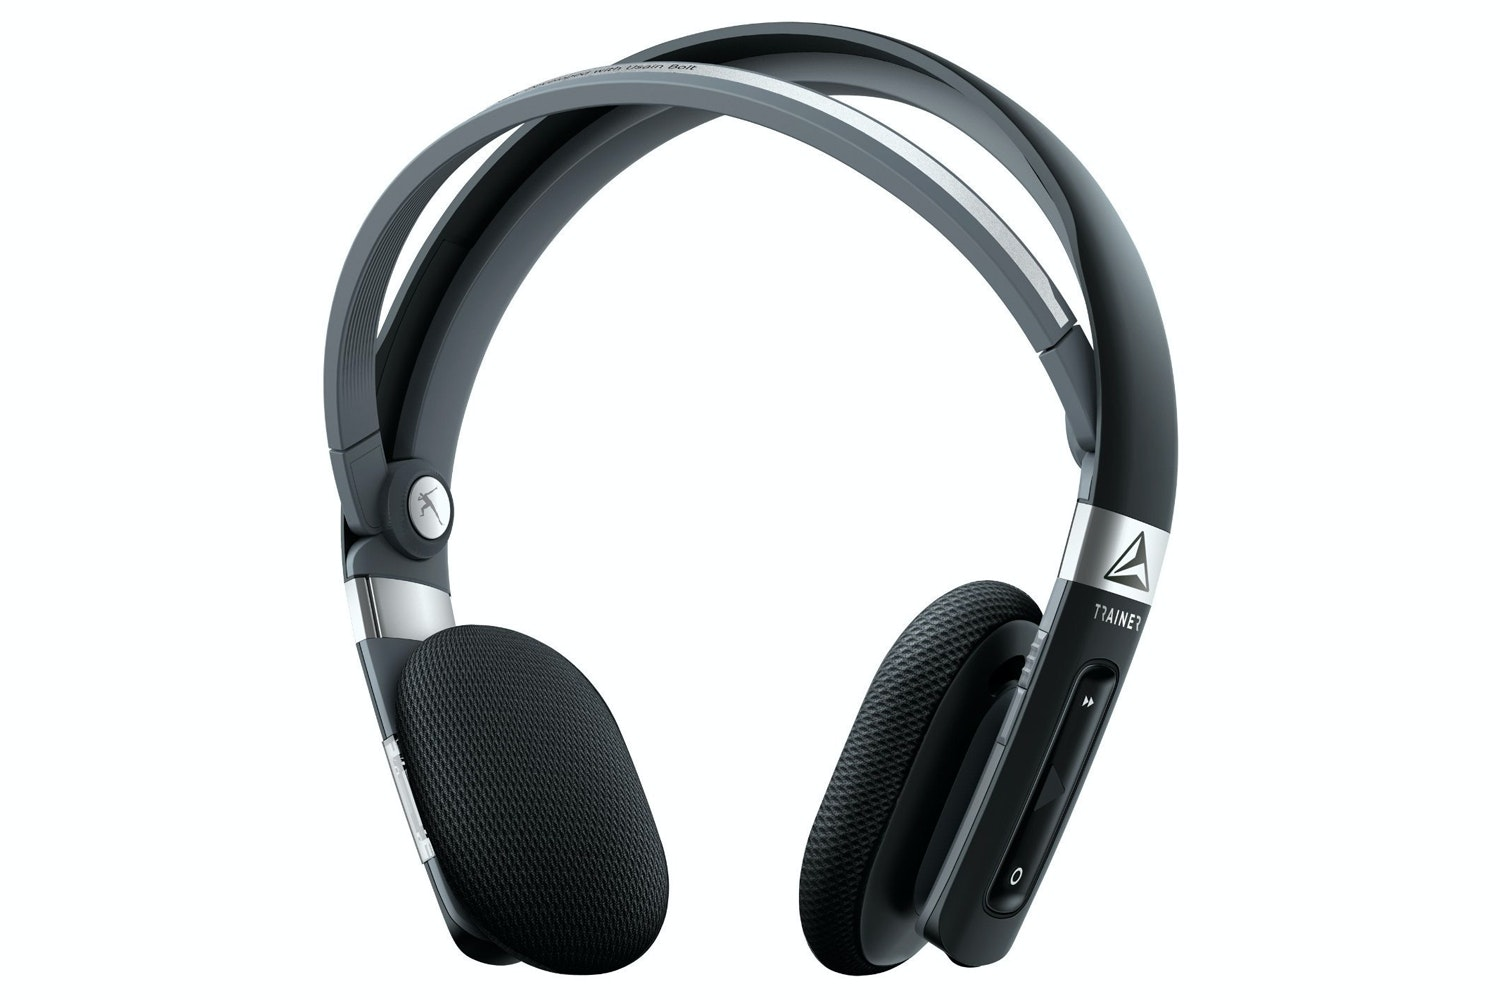 Gibson Wireless Bluetooth Headphones | Black